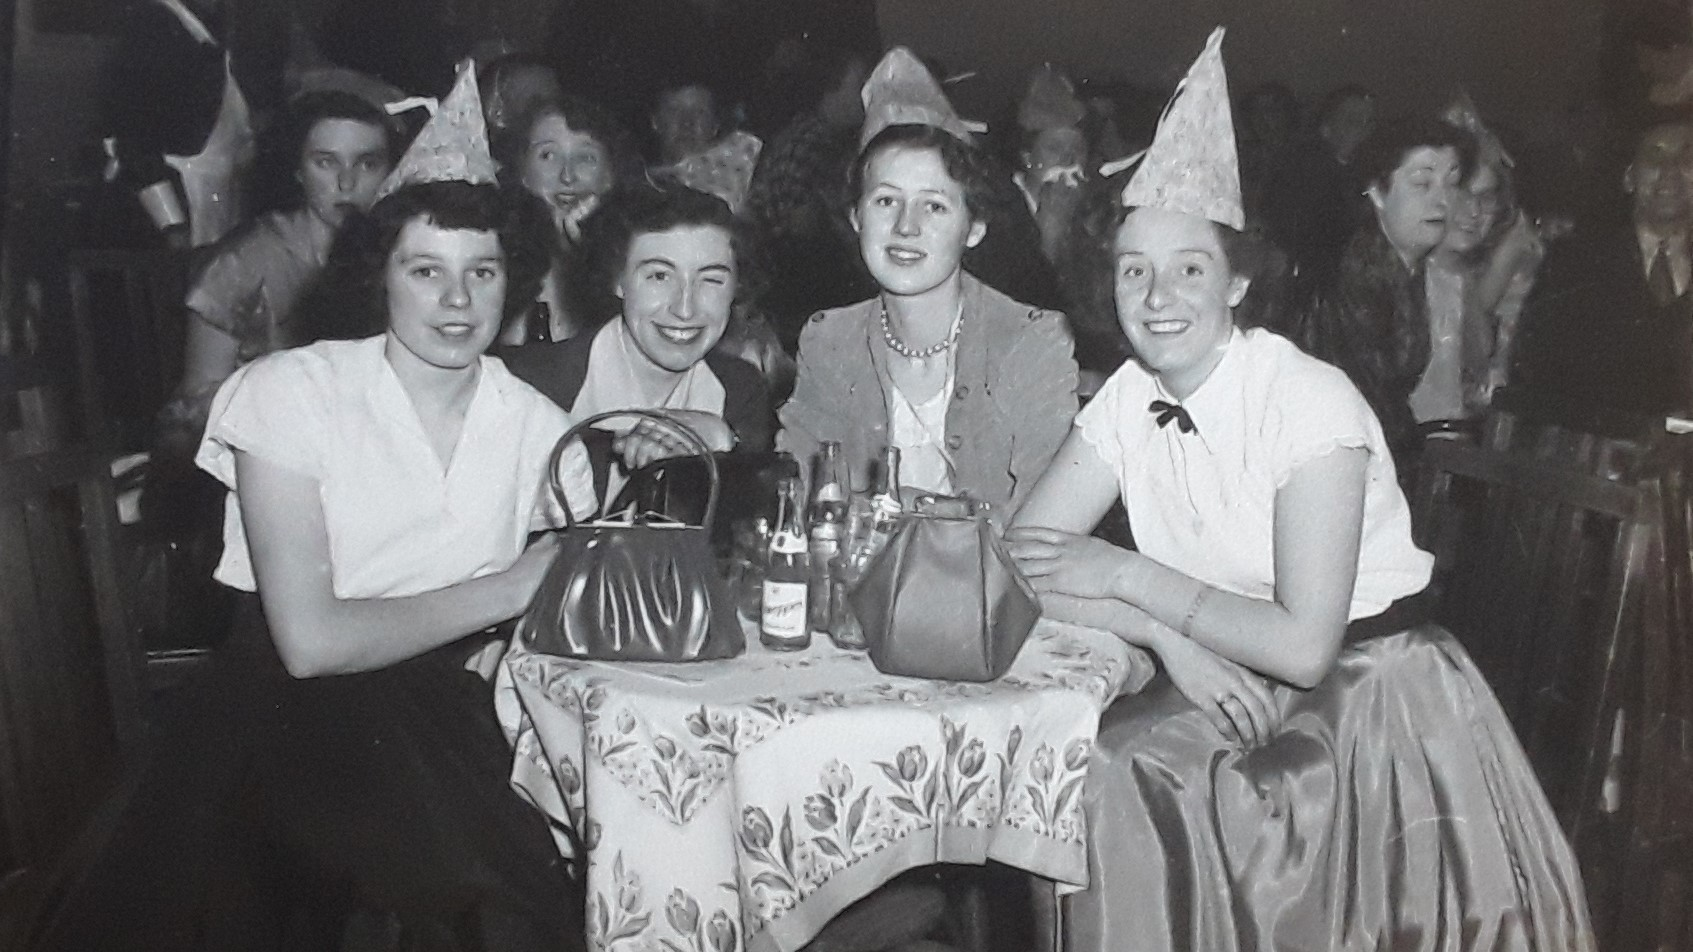 an old photo taken c. 1960 showing four young women all dressed up sitting at a table with their handbags in front of them. You can see little bottles of tonic water, but the accompanying gin is hidden.